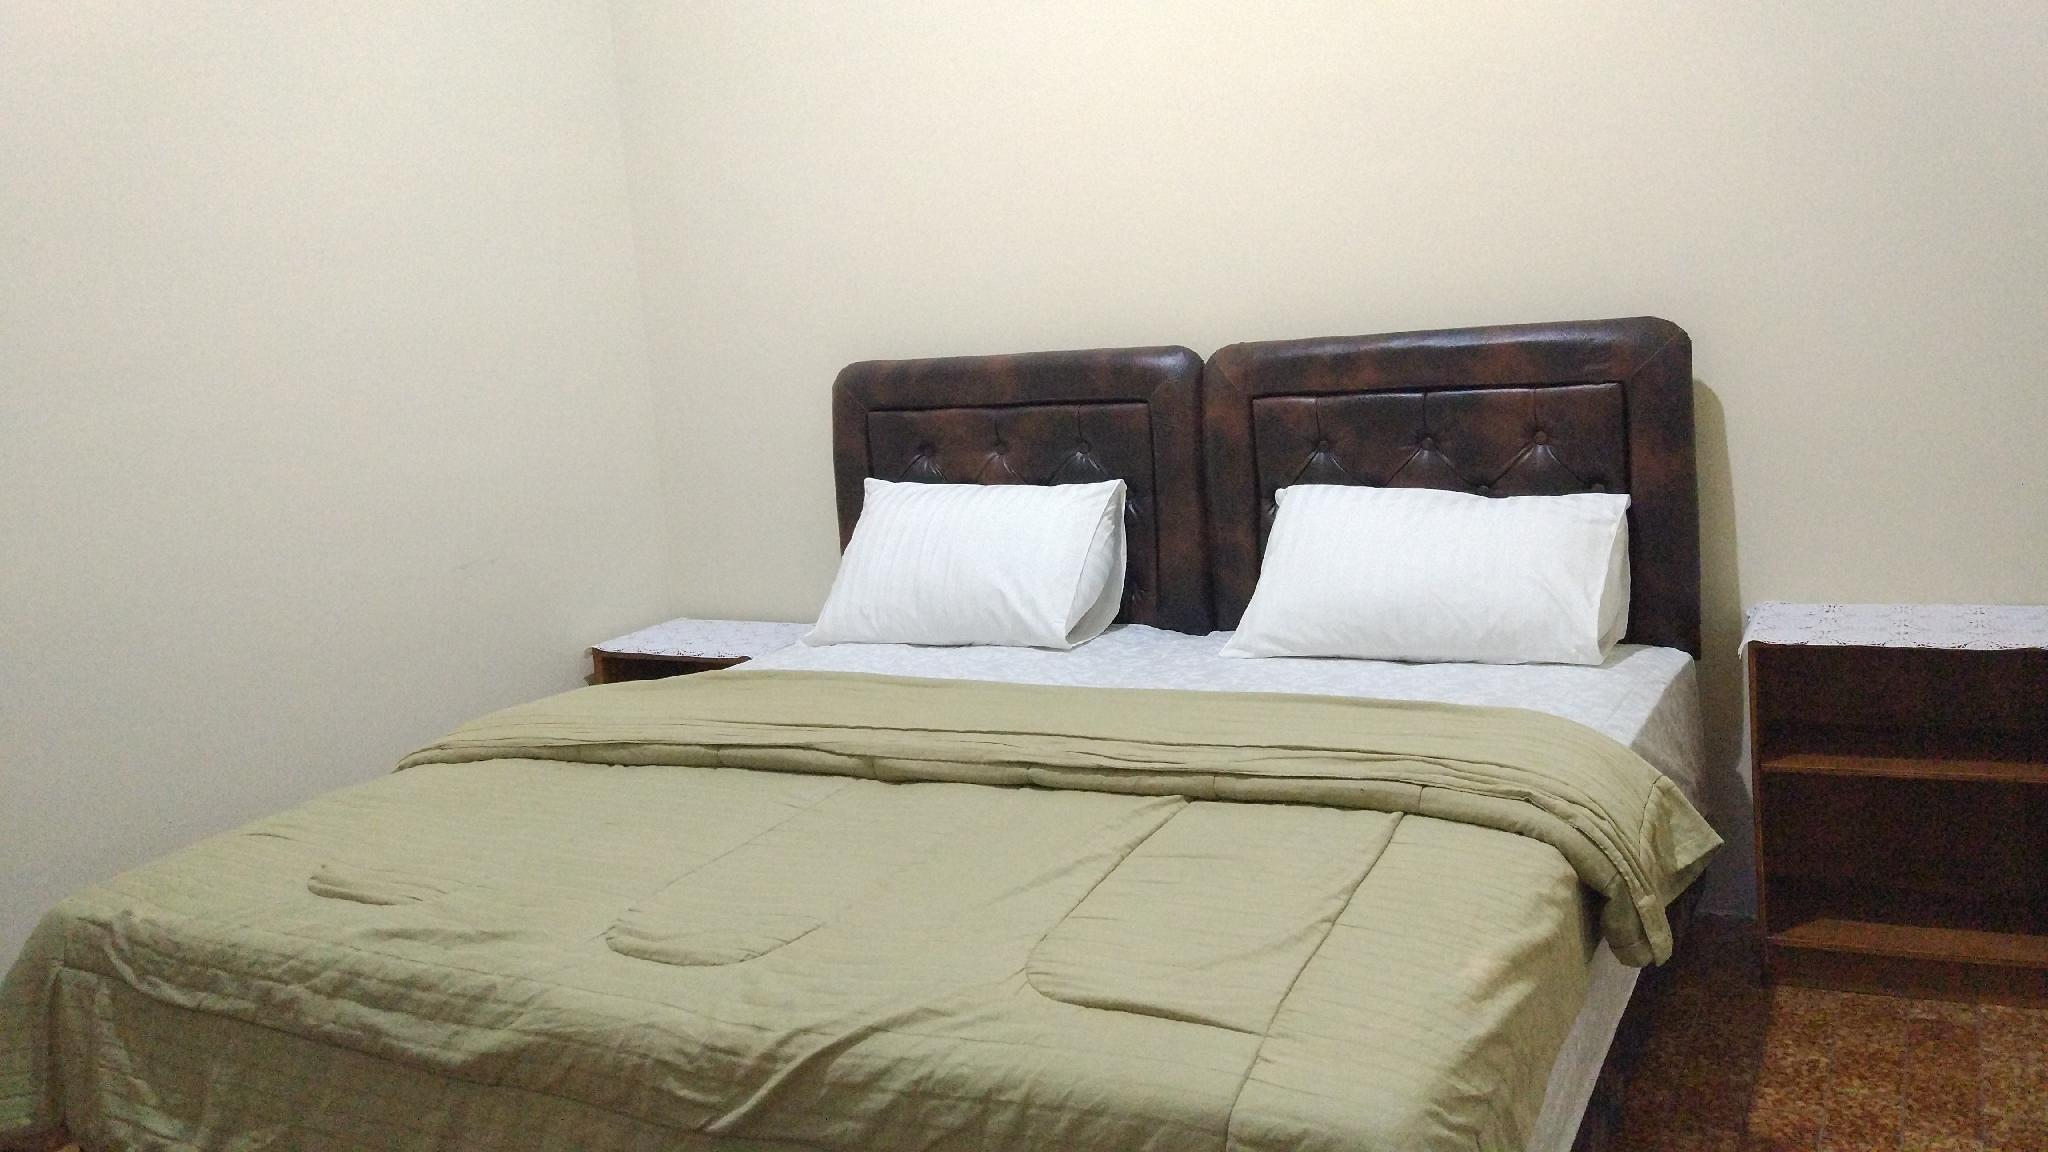 Guest House Sakinah Reviews